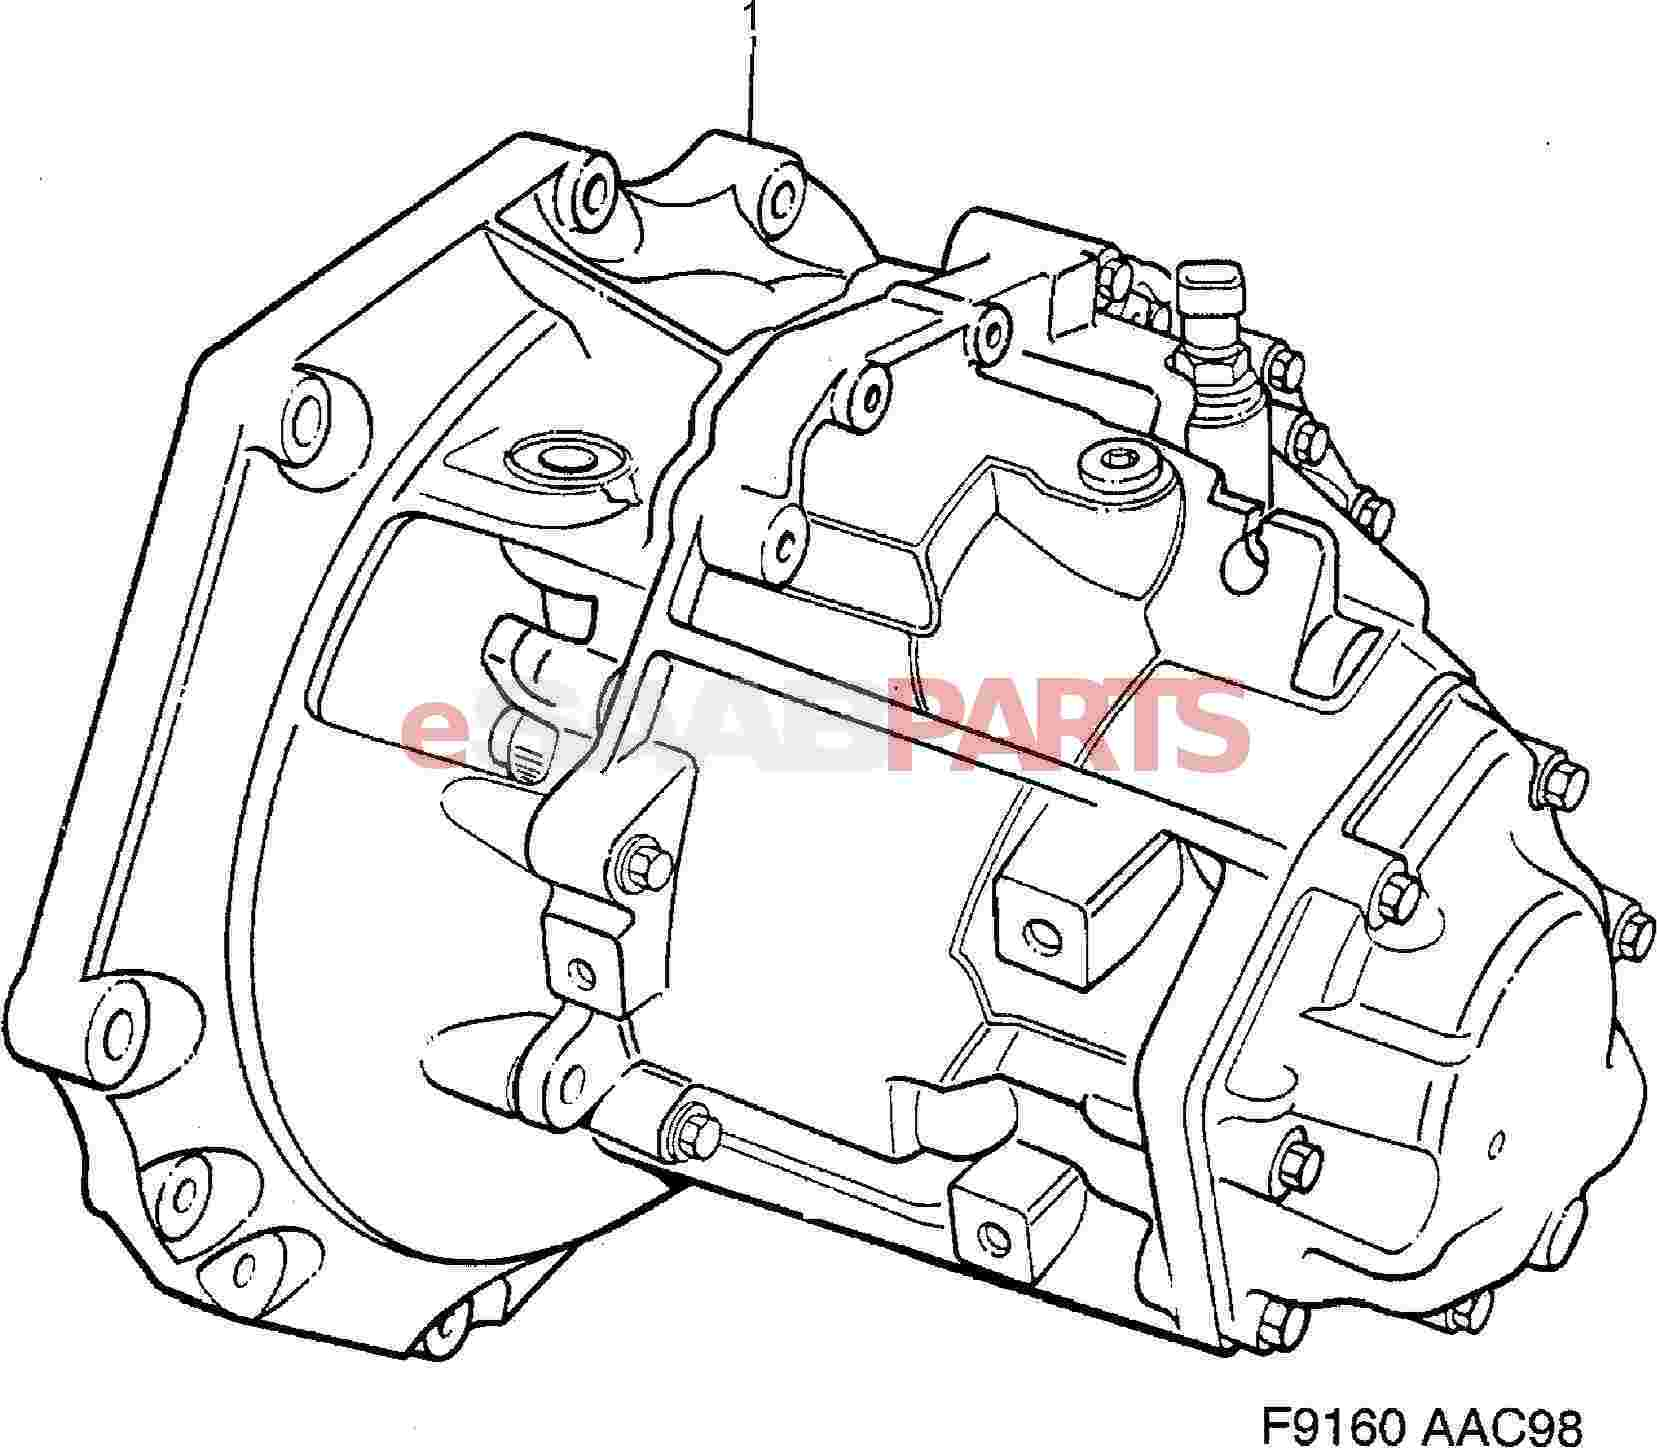 1999 Saab 9 5 Wiring Diagram Great Design Of 2003 Engine Transmission Auto 2006 3 Fuse